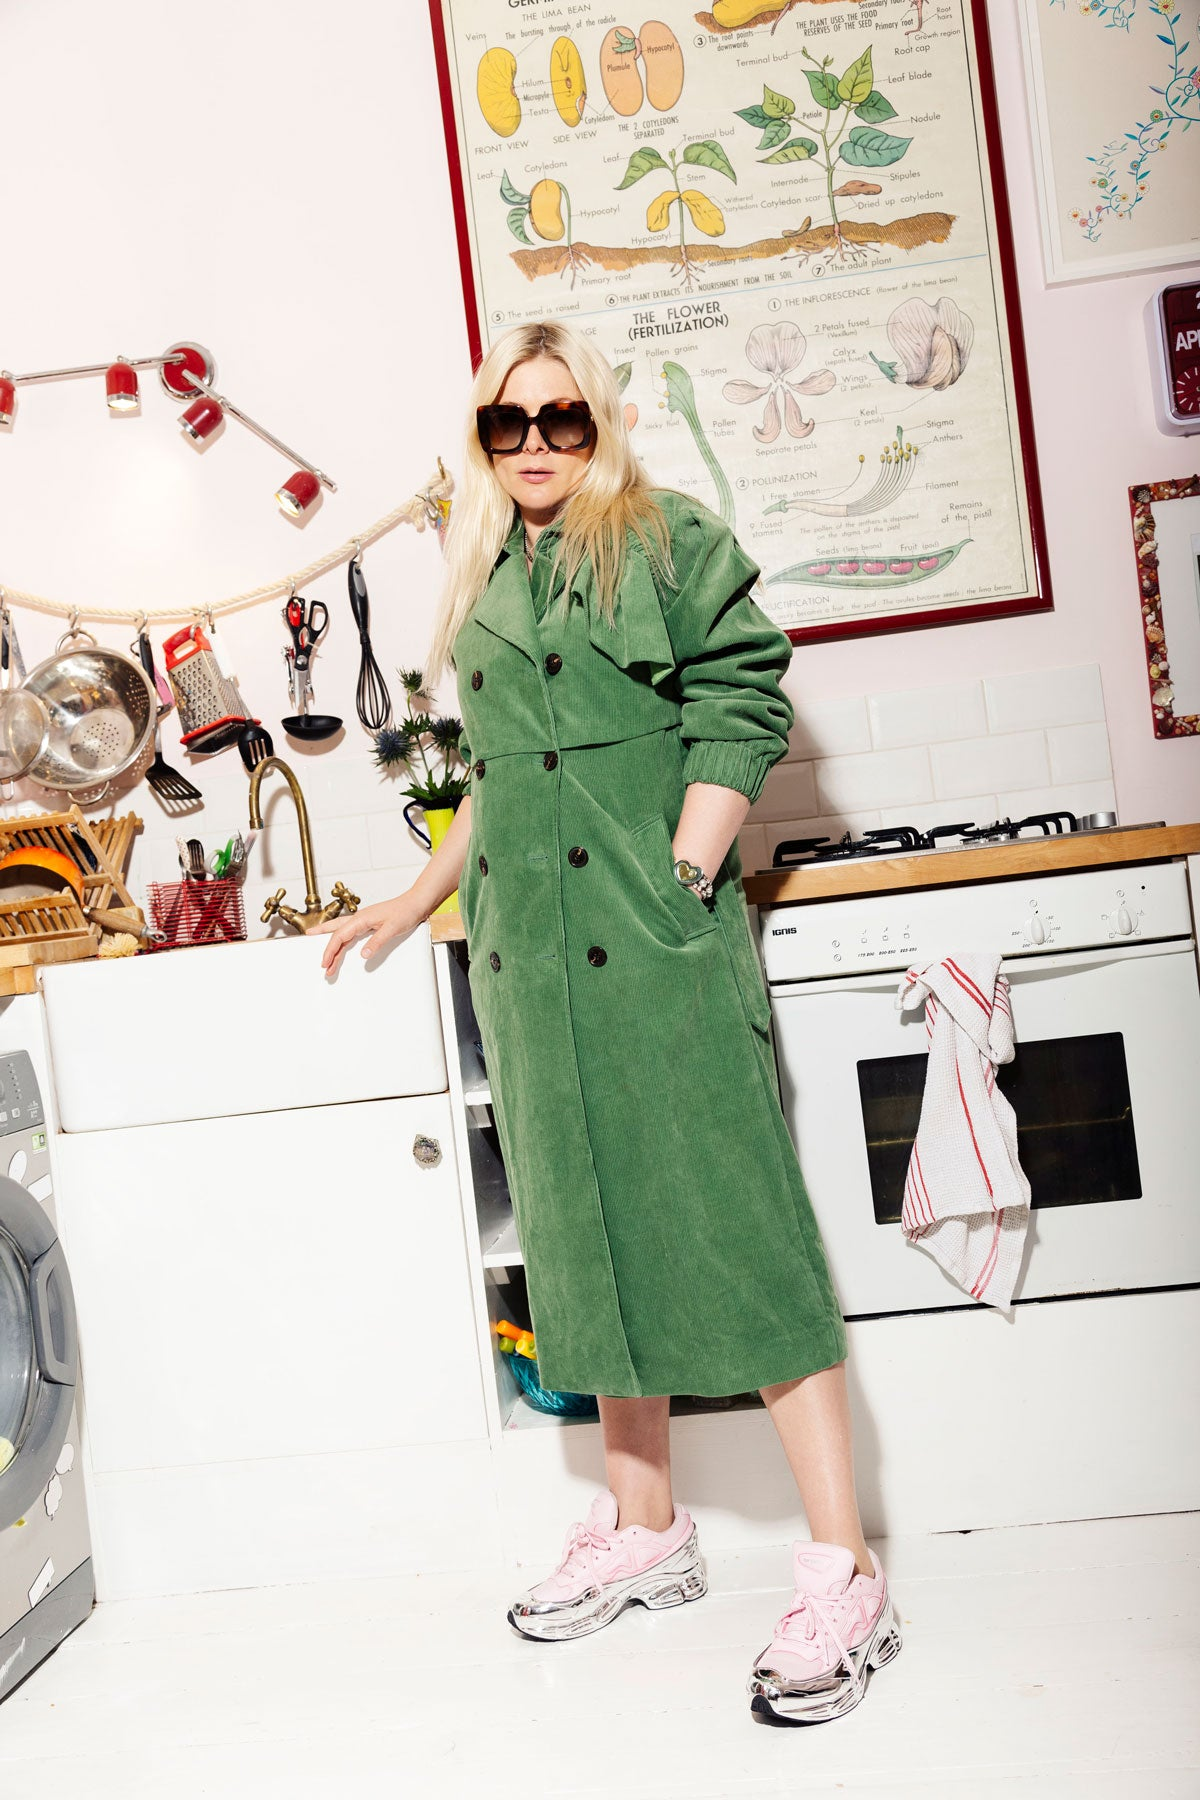 Bella Howard in preen line wearing a green trench coat from resort 19